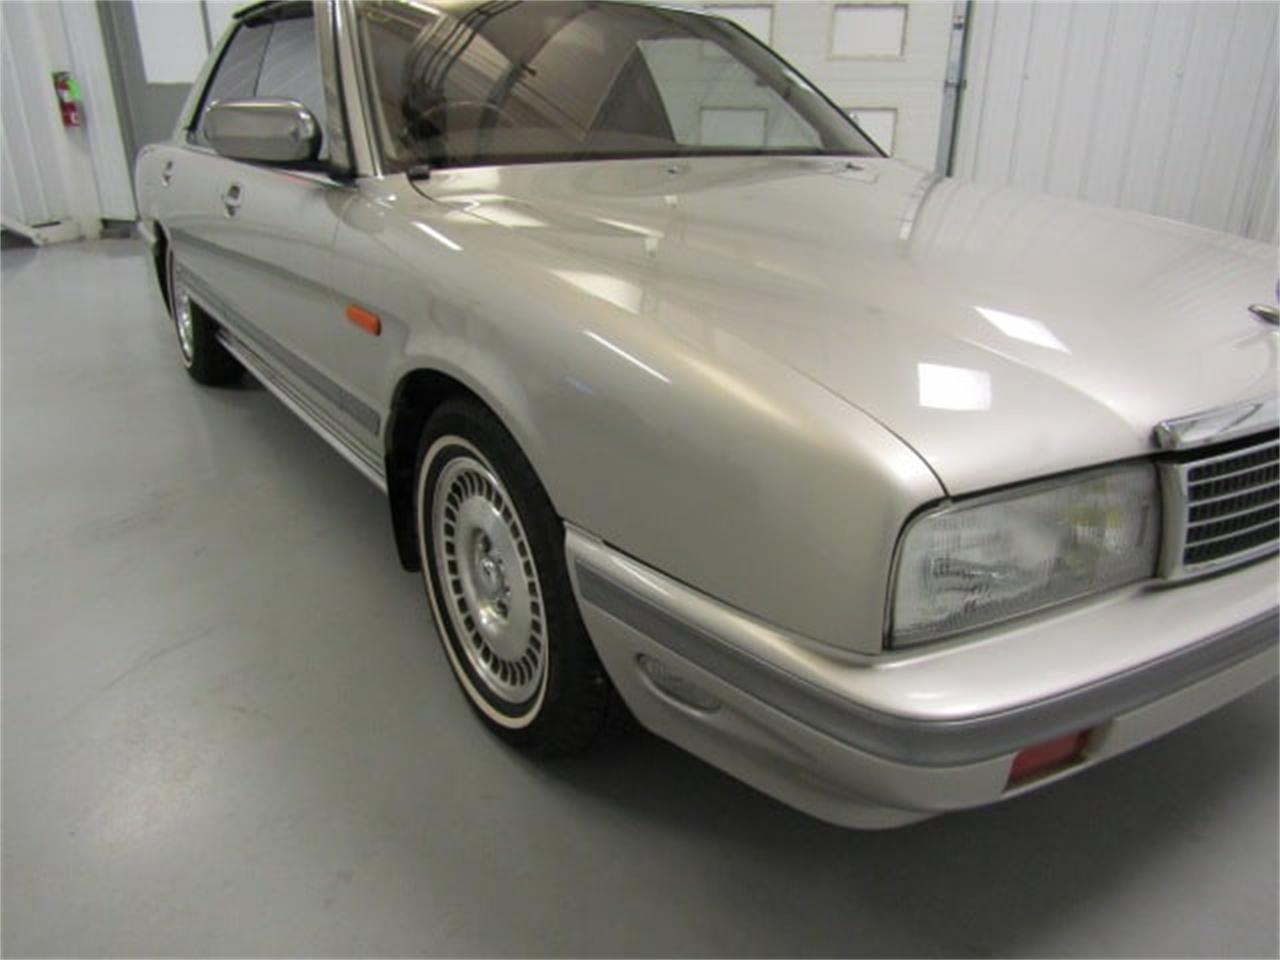 Large Picture of '90 Nissan Cima located in Christiansburg Virginia - $6,900.00 - JZ2V